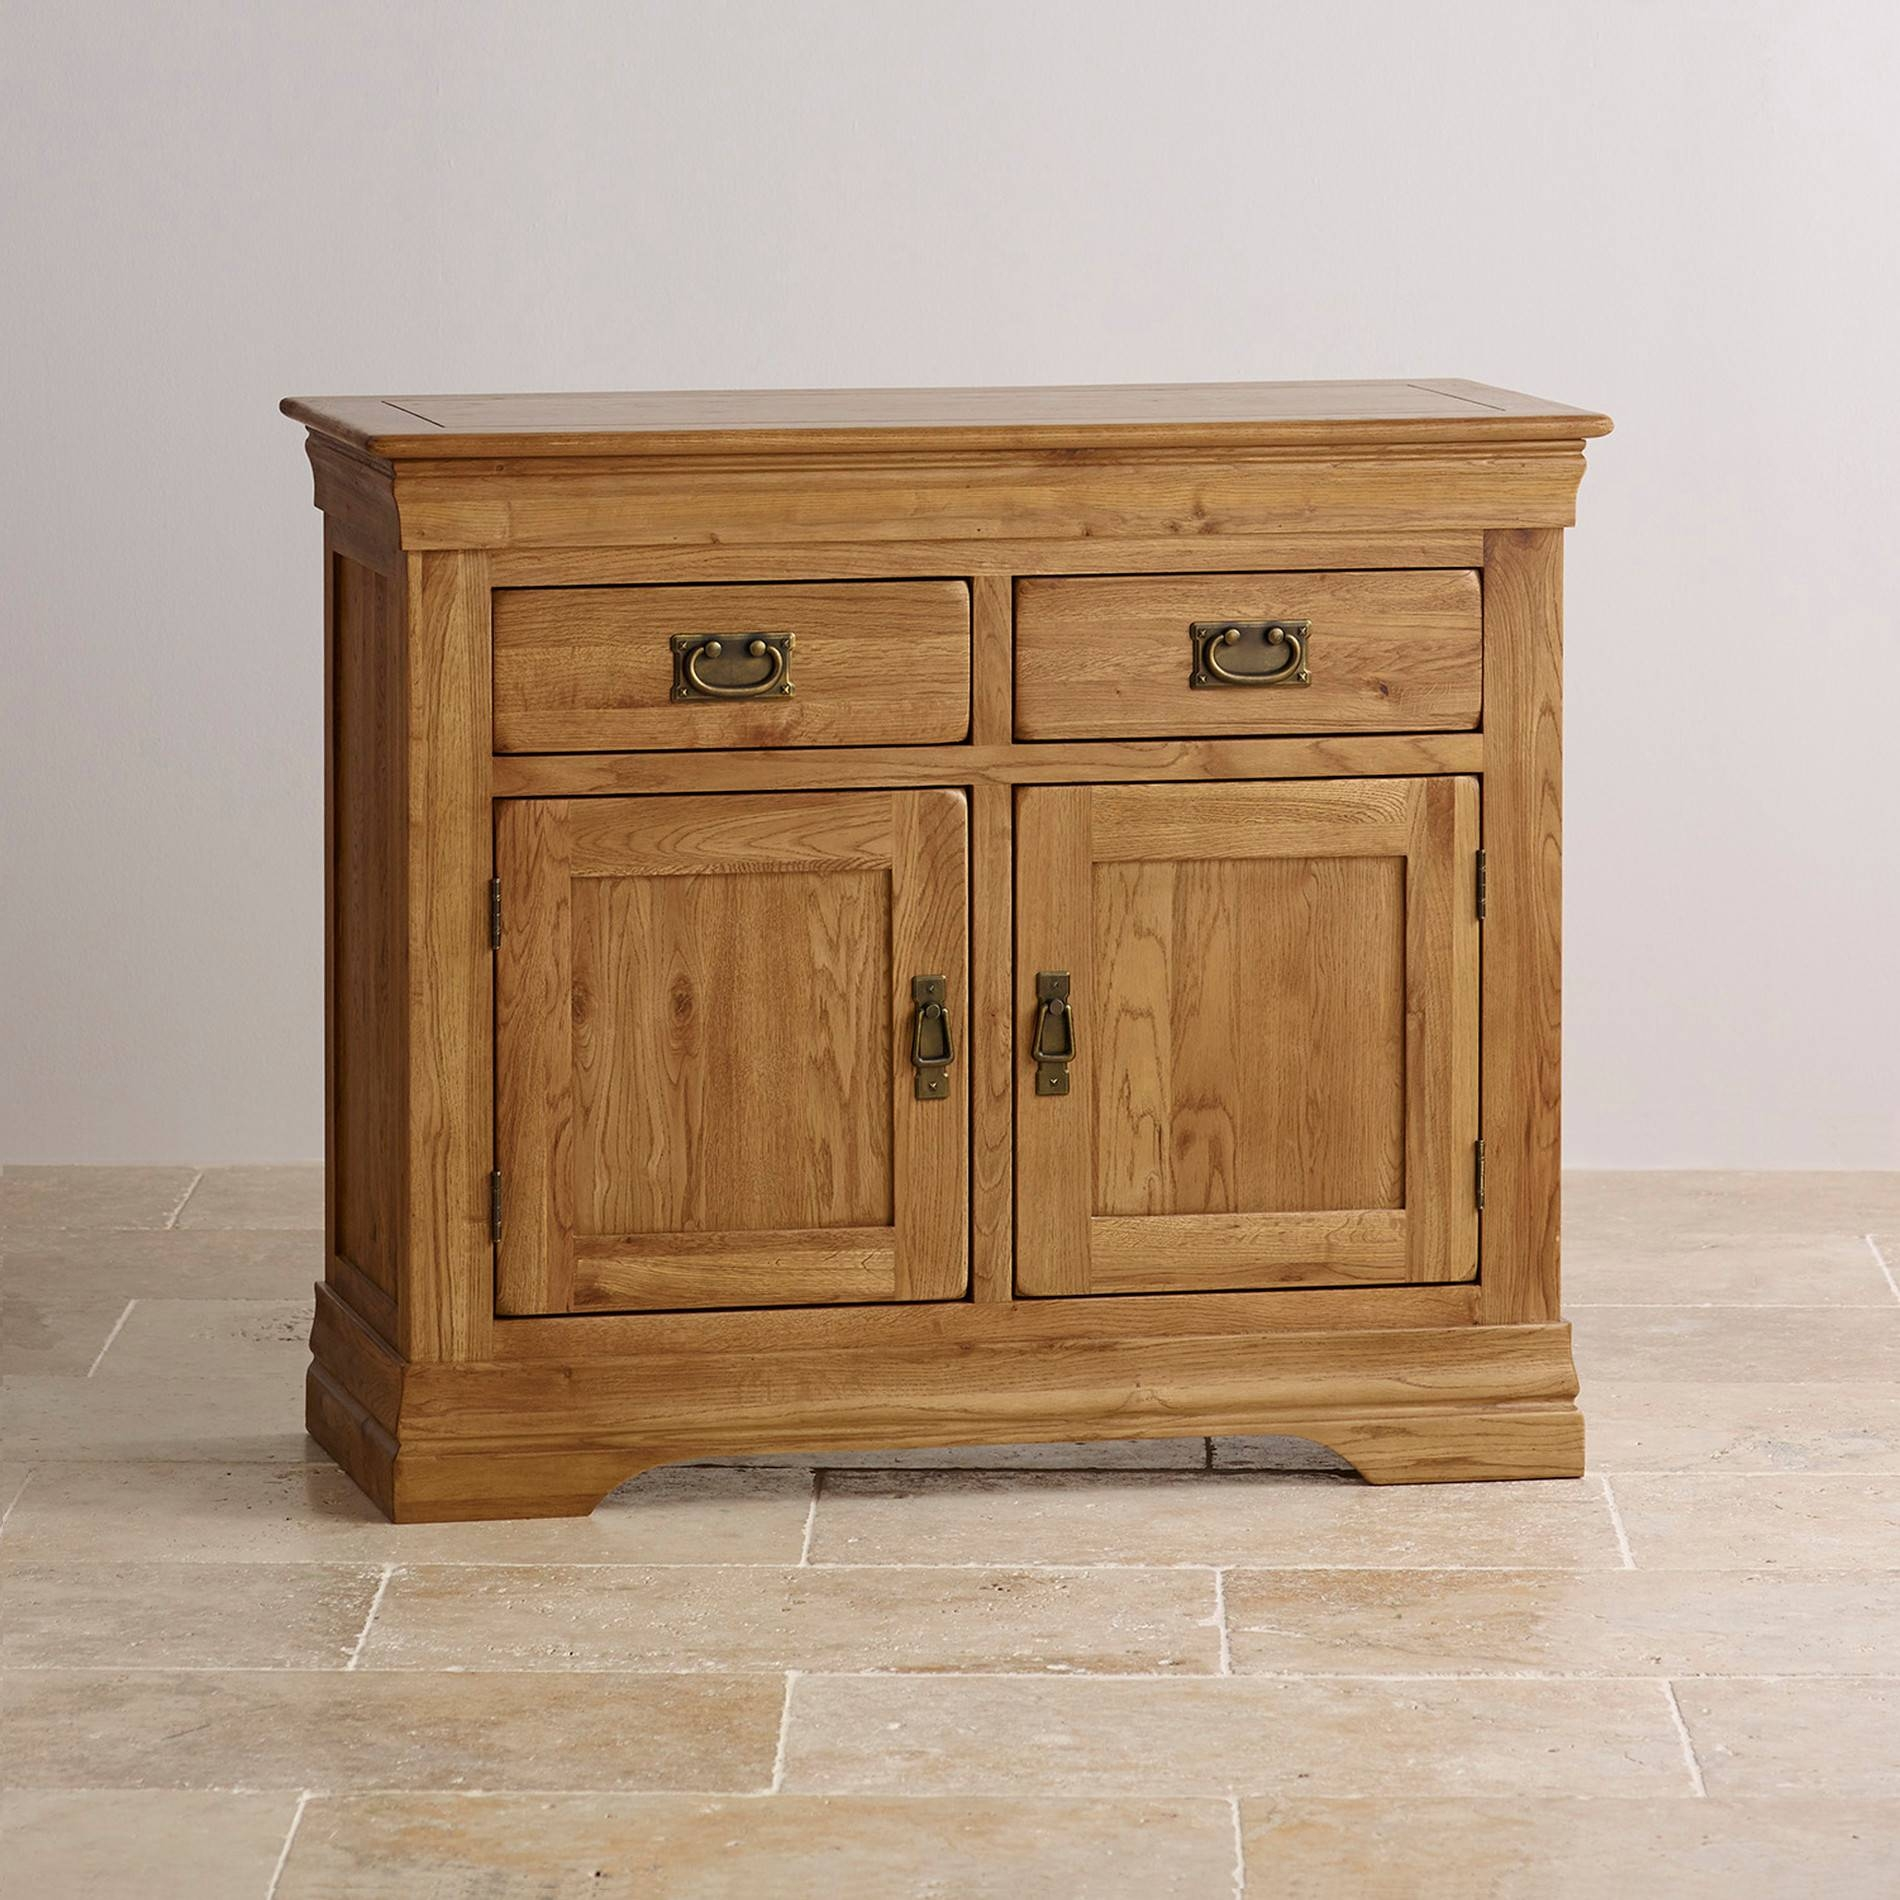 French Farmhouse Large Sideboard In Solid Oak | Oak Furniture Land within French Style Sideboards (Image 4 of 30)